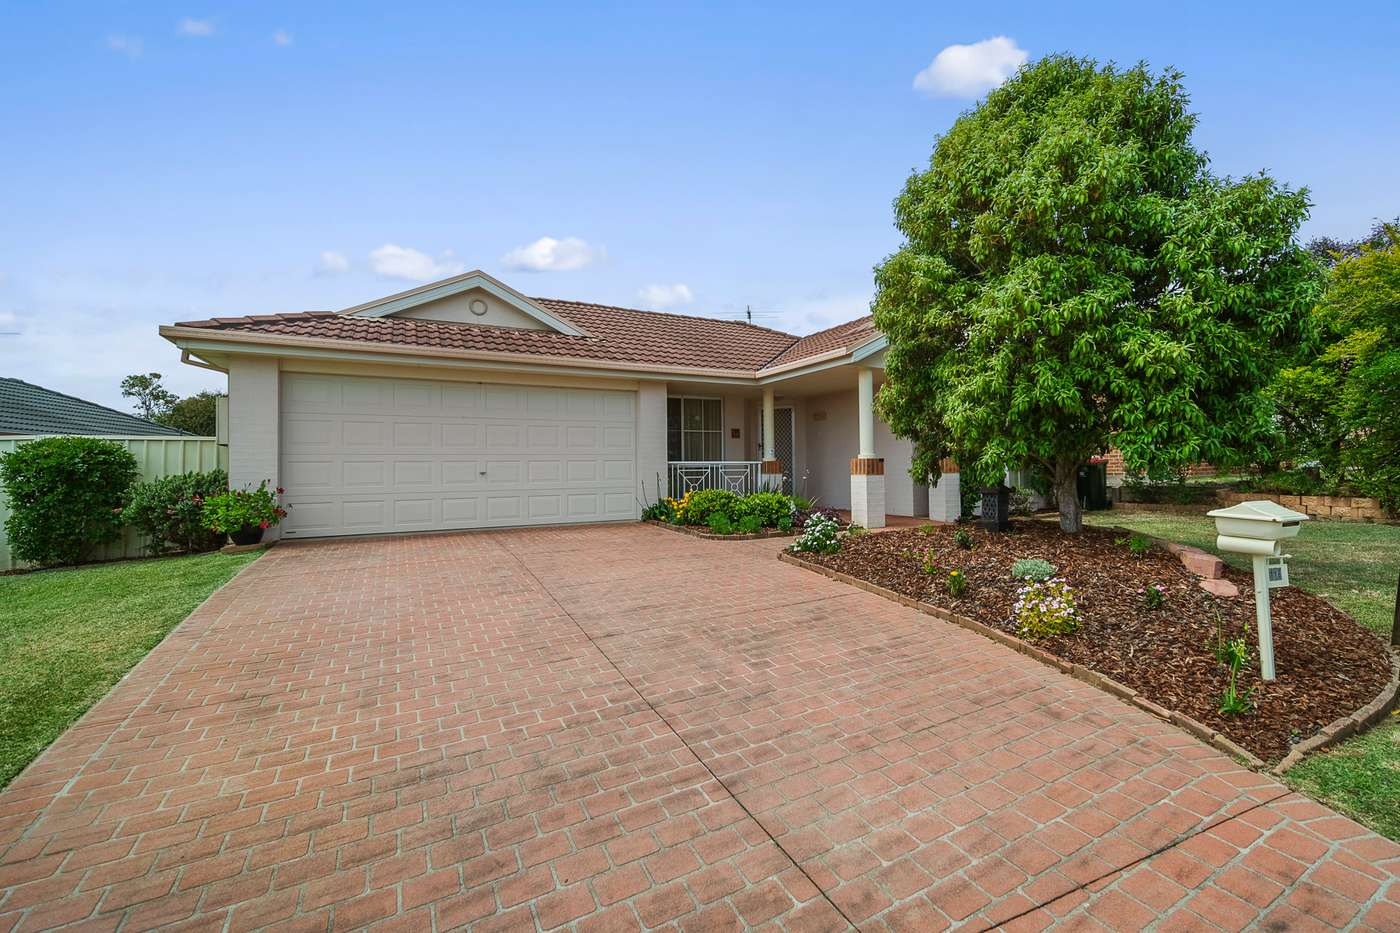 Main view of Homely house listing, 118 Kindlebark Drive, Medowie, NSW 2318